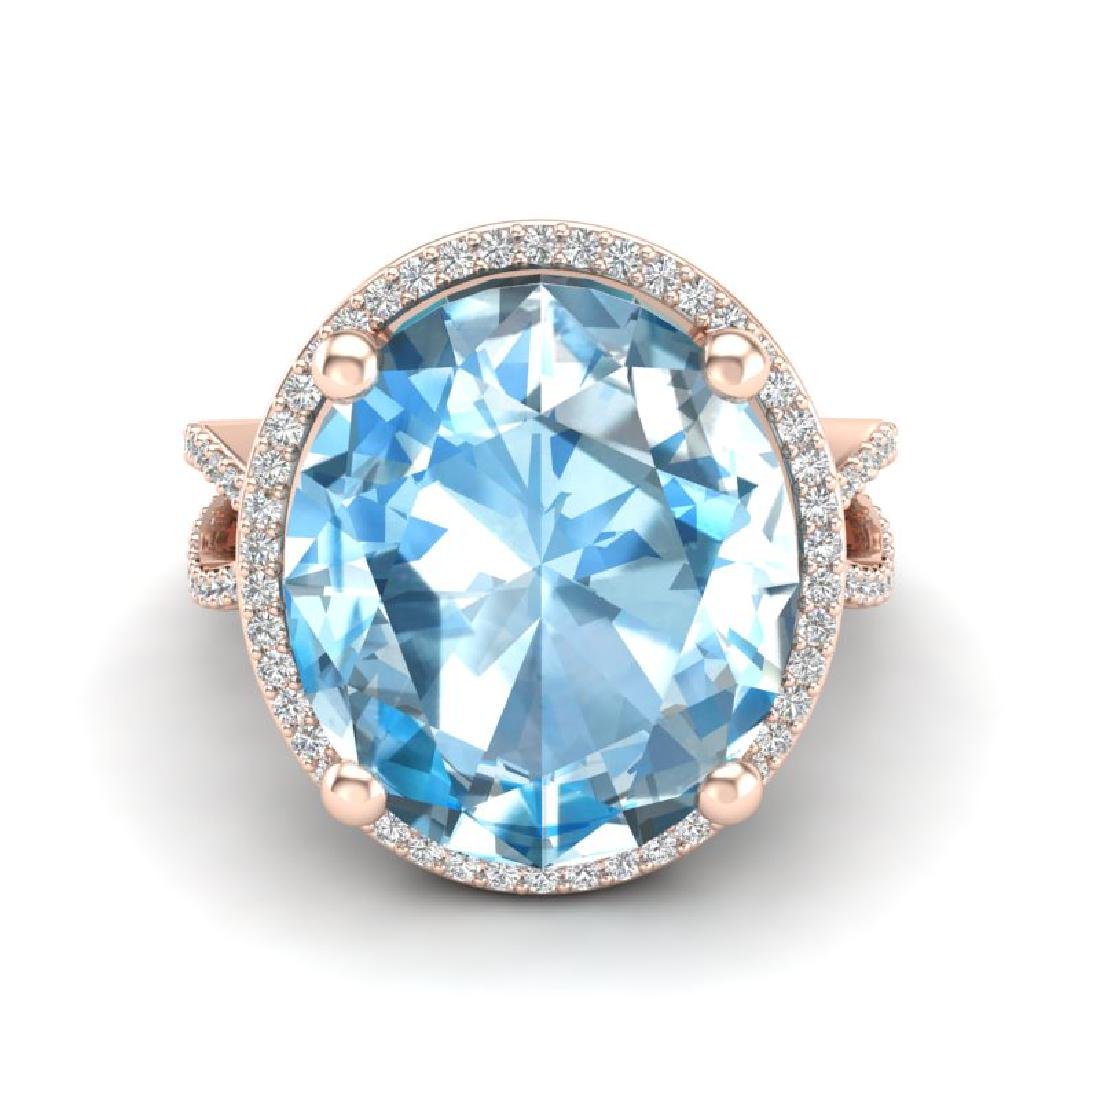 12 CTW Sky Blue Topaz & Micro Pave VS/SI Diamond Halo